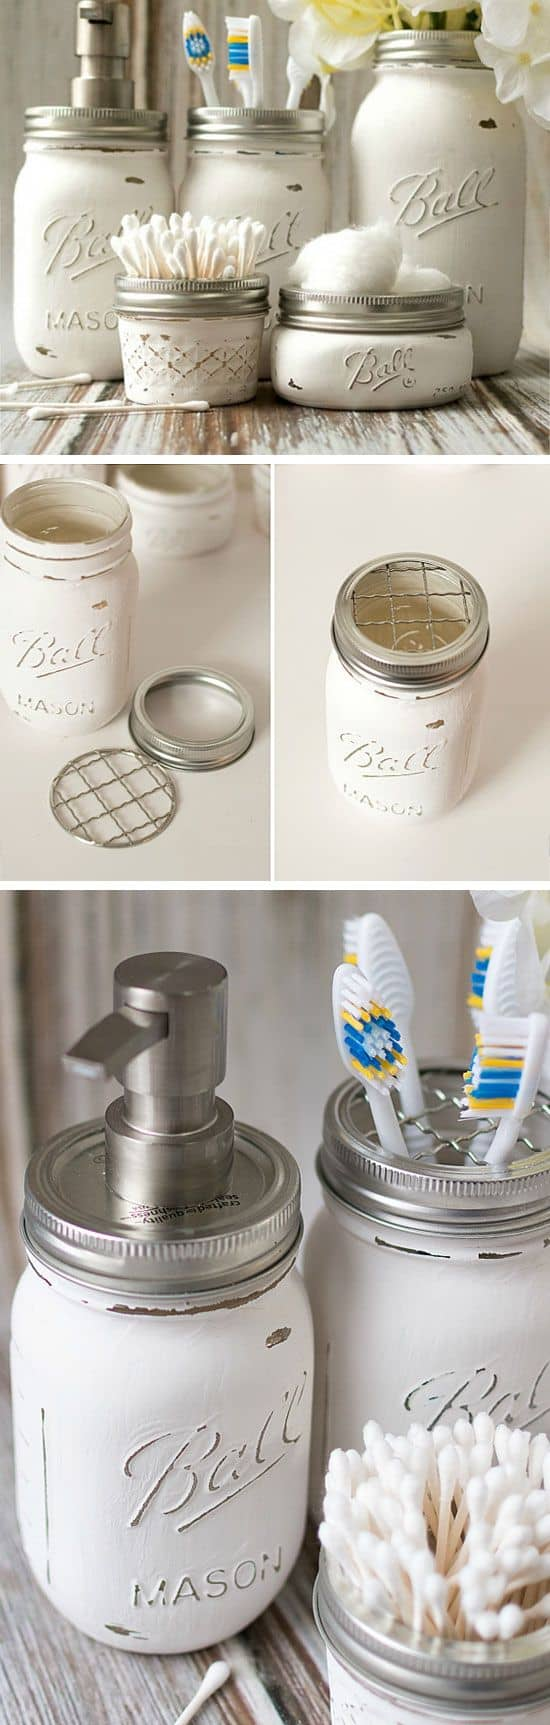 109. ORGANIZING BATHROOM NECESSITIES WITH RECYCLED JARS